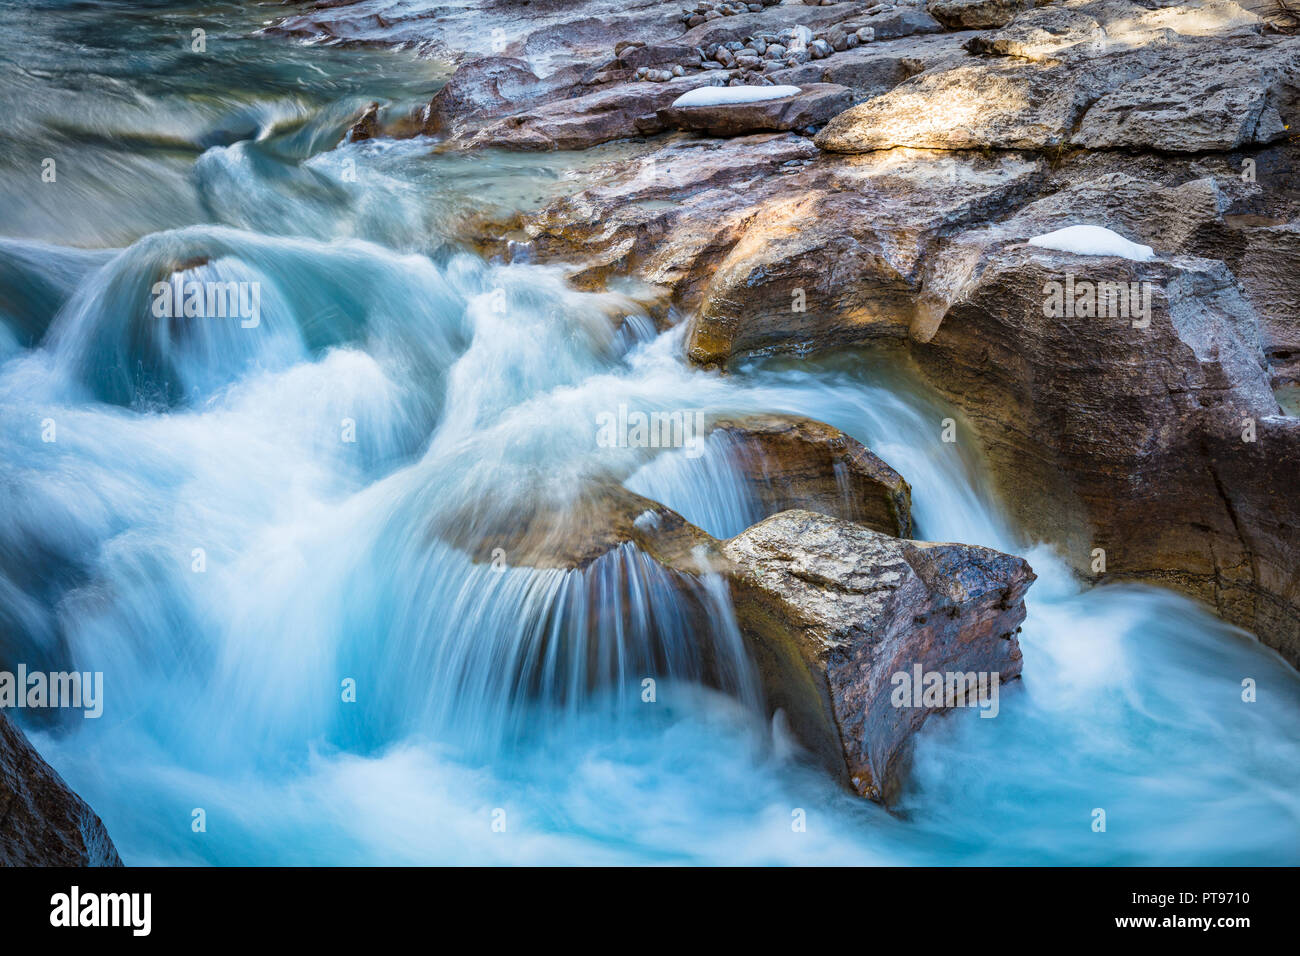 Nigel Creek is a short stream located in the Canadian Rockies of Alberta, Canada. - Stock Image